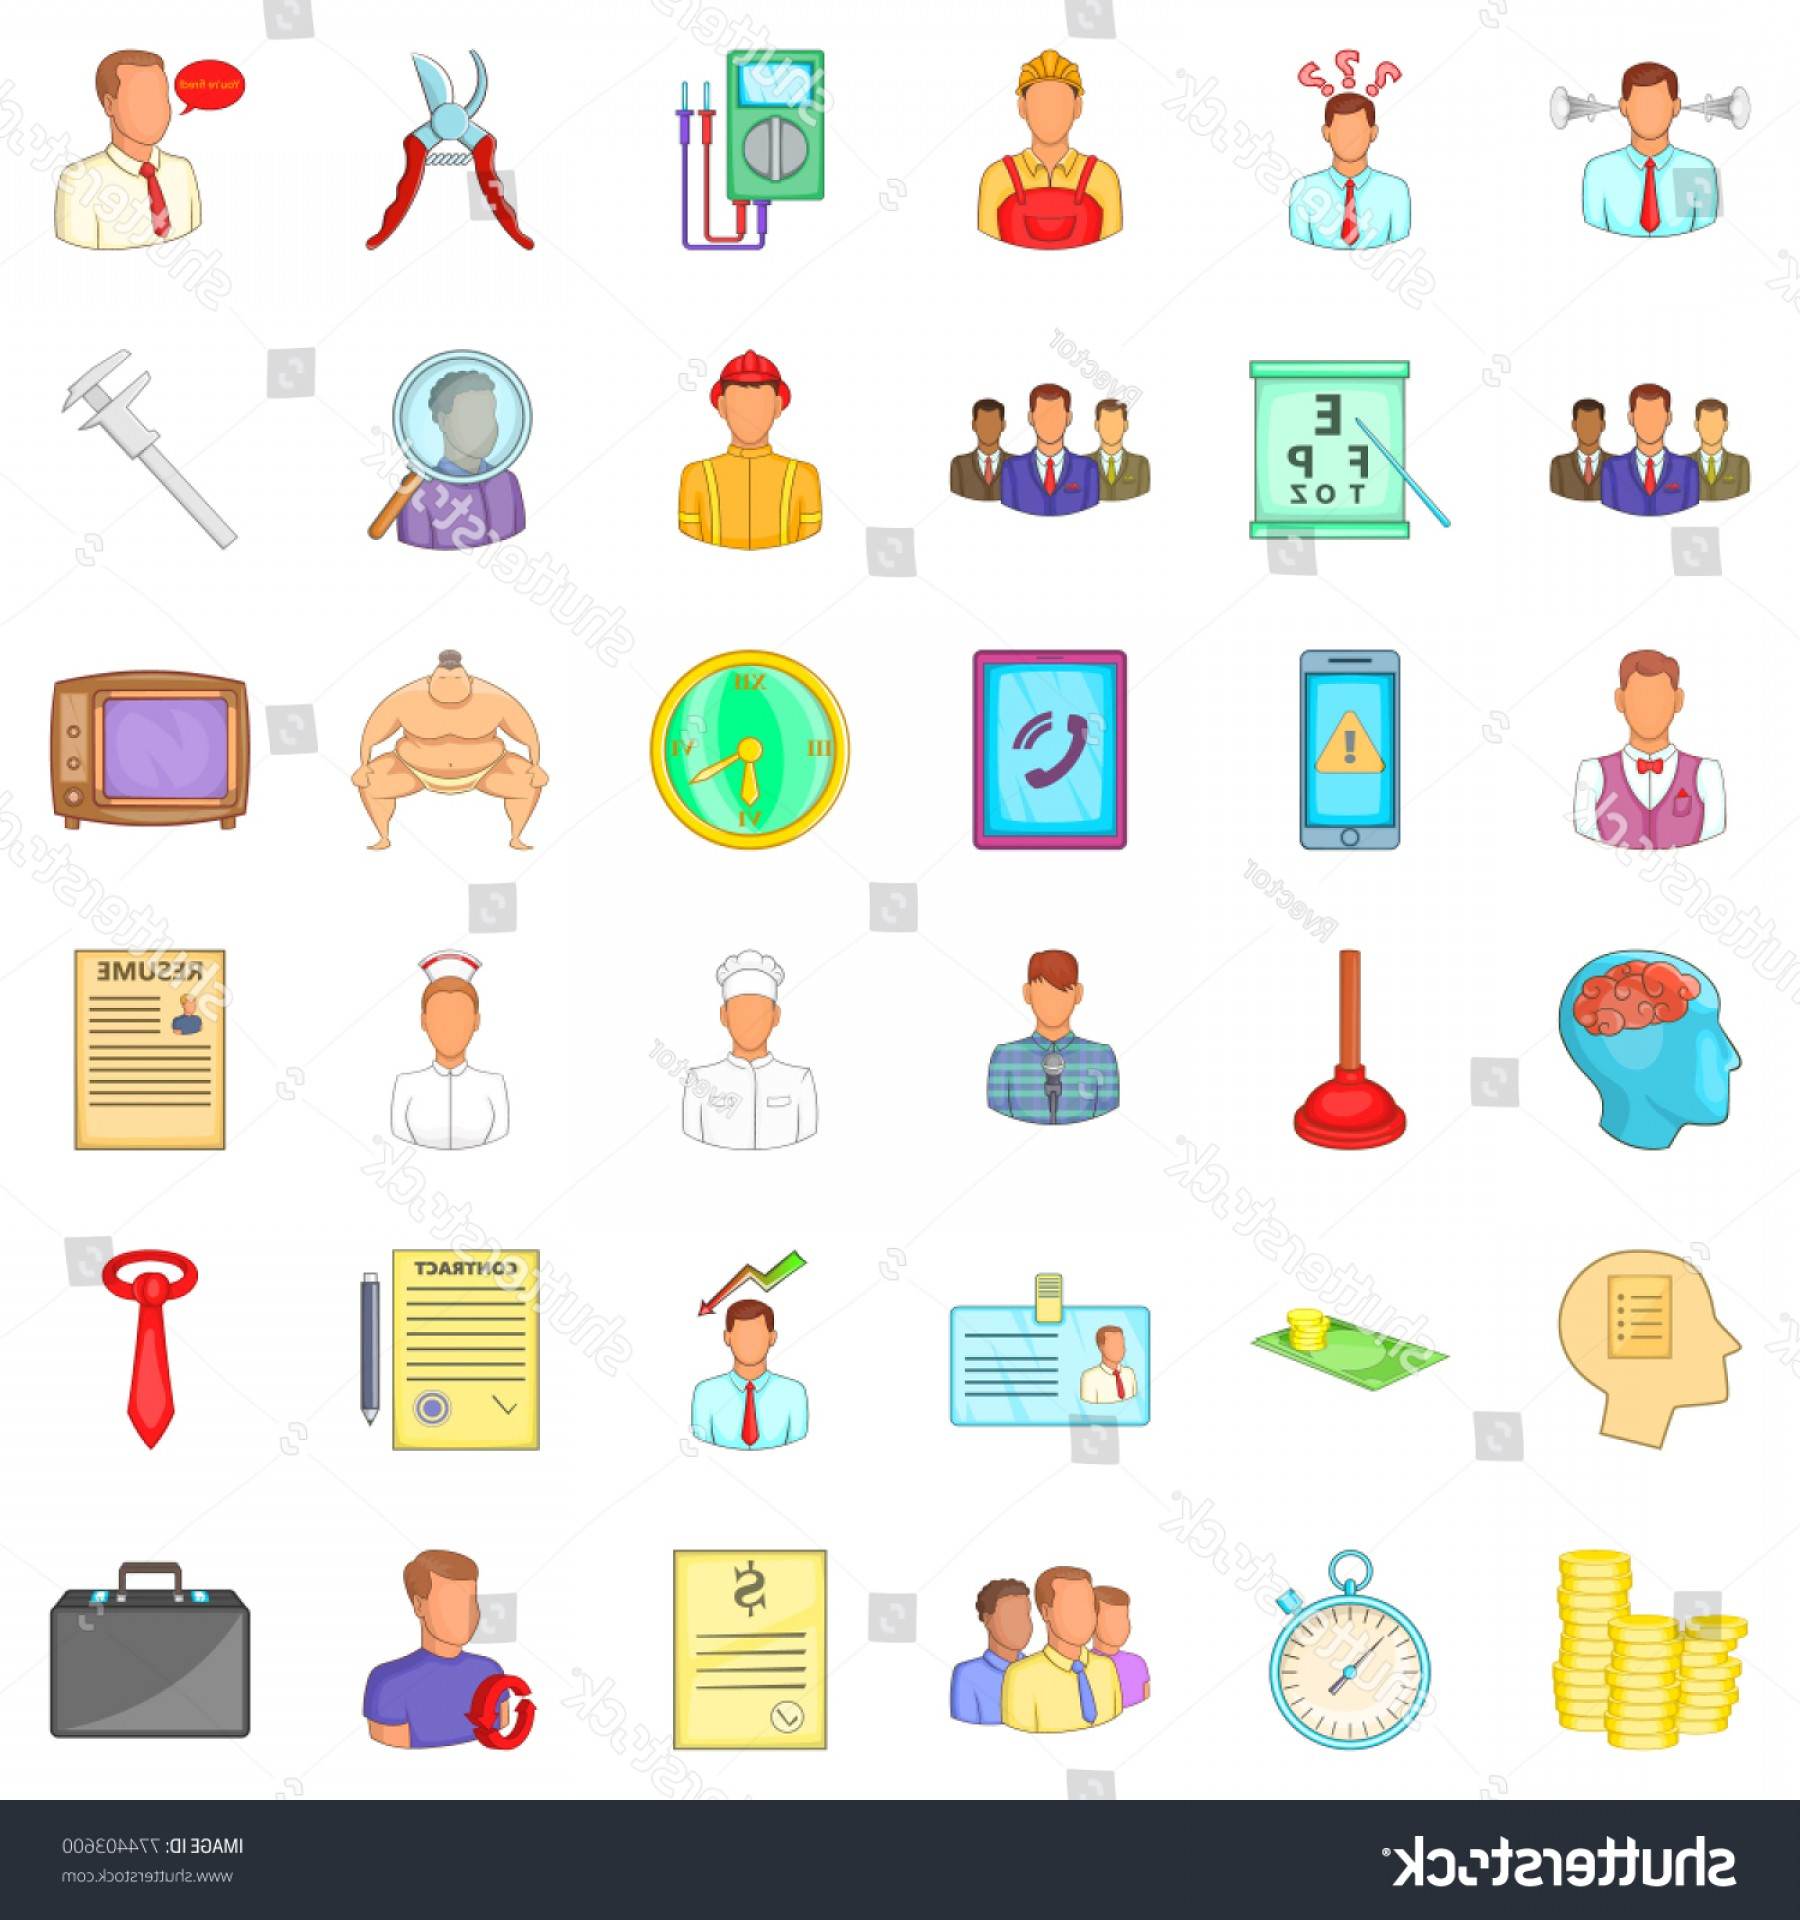 Vector Job Offer: Job Offer Icons Set Cartoon Style